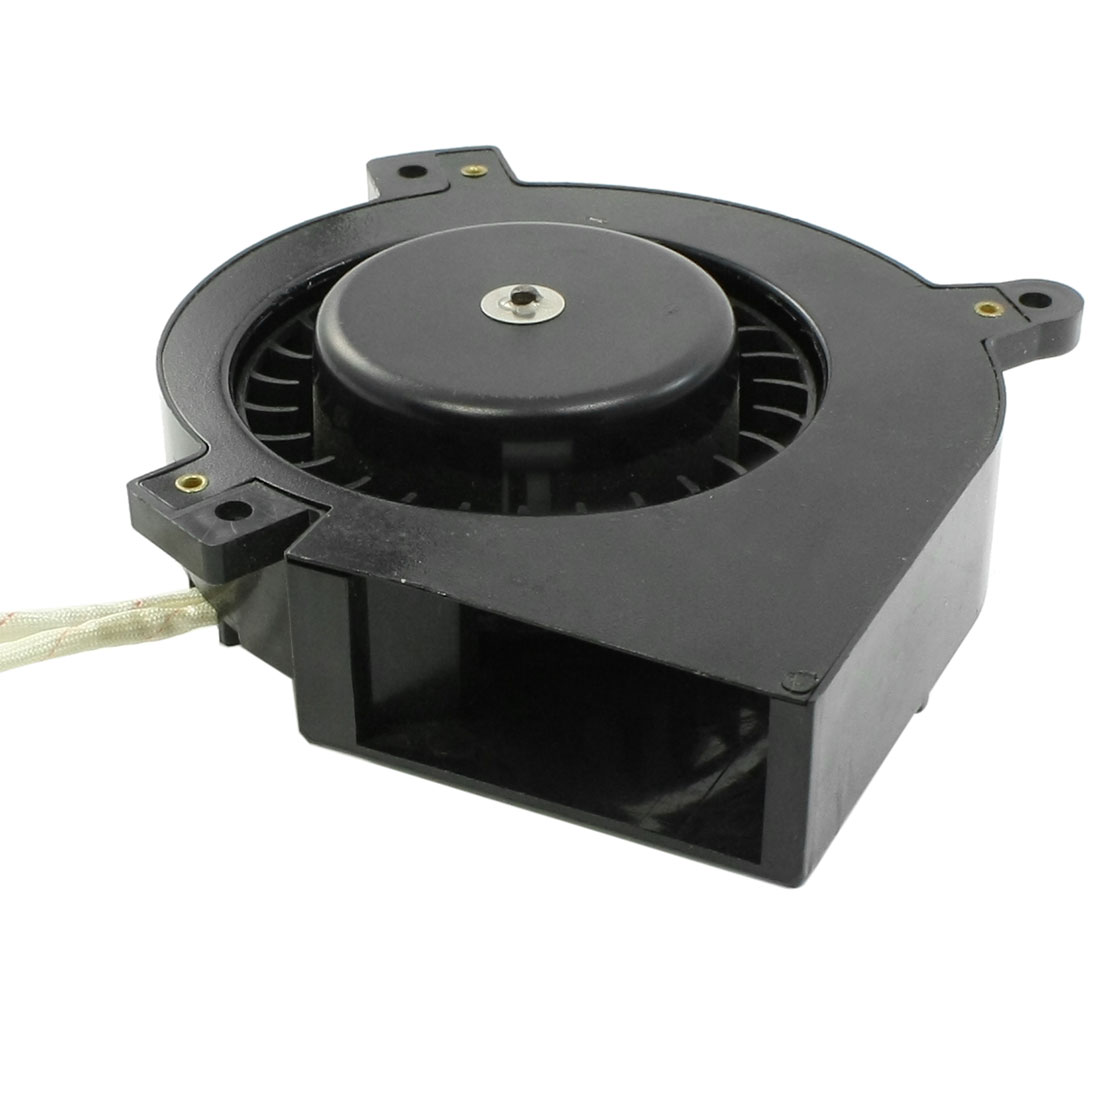 AC 220V 13 Watt Power 2400RPM Plastic Reversed Heater Blower Motor